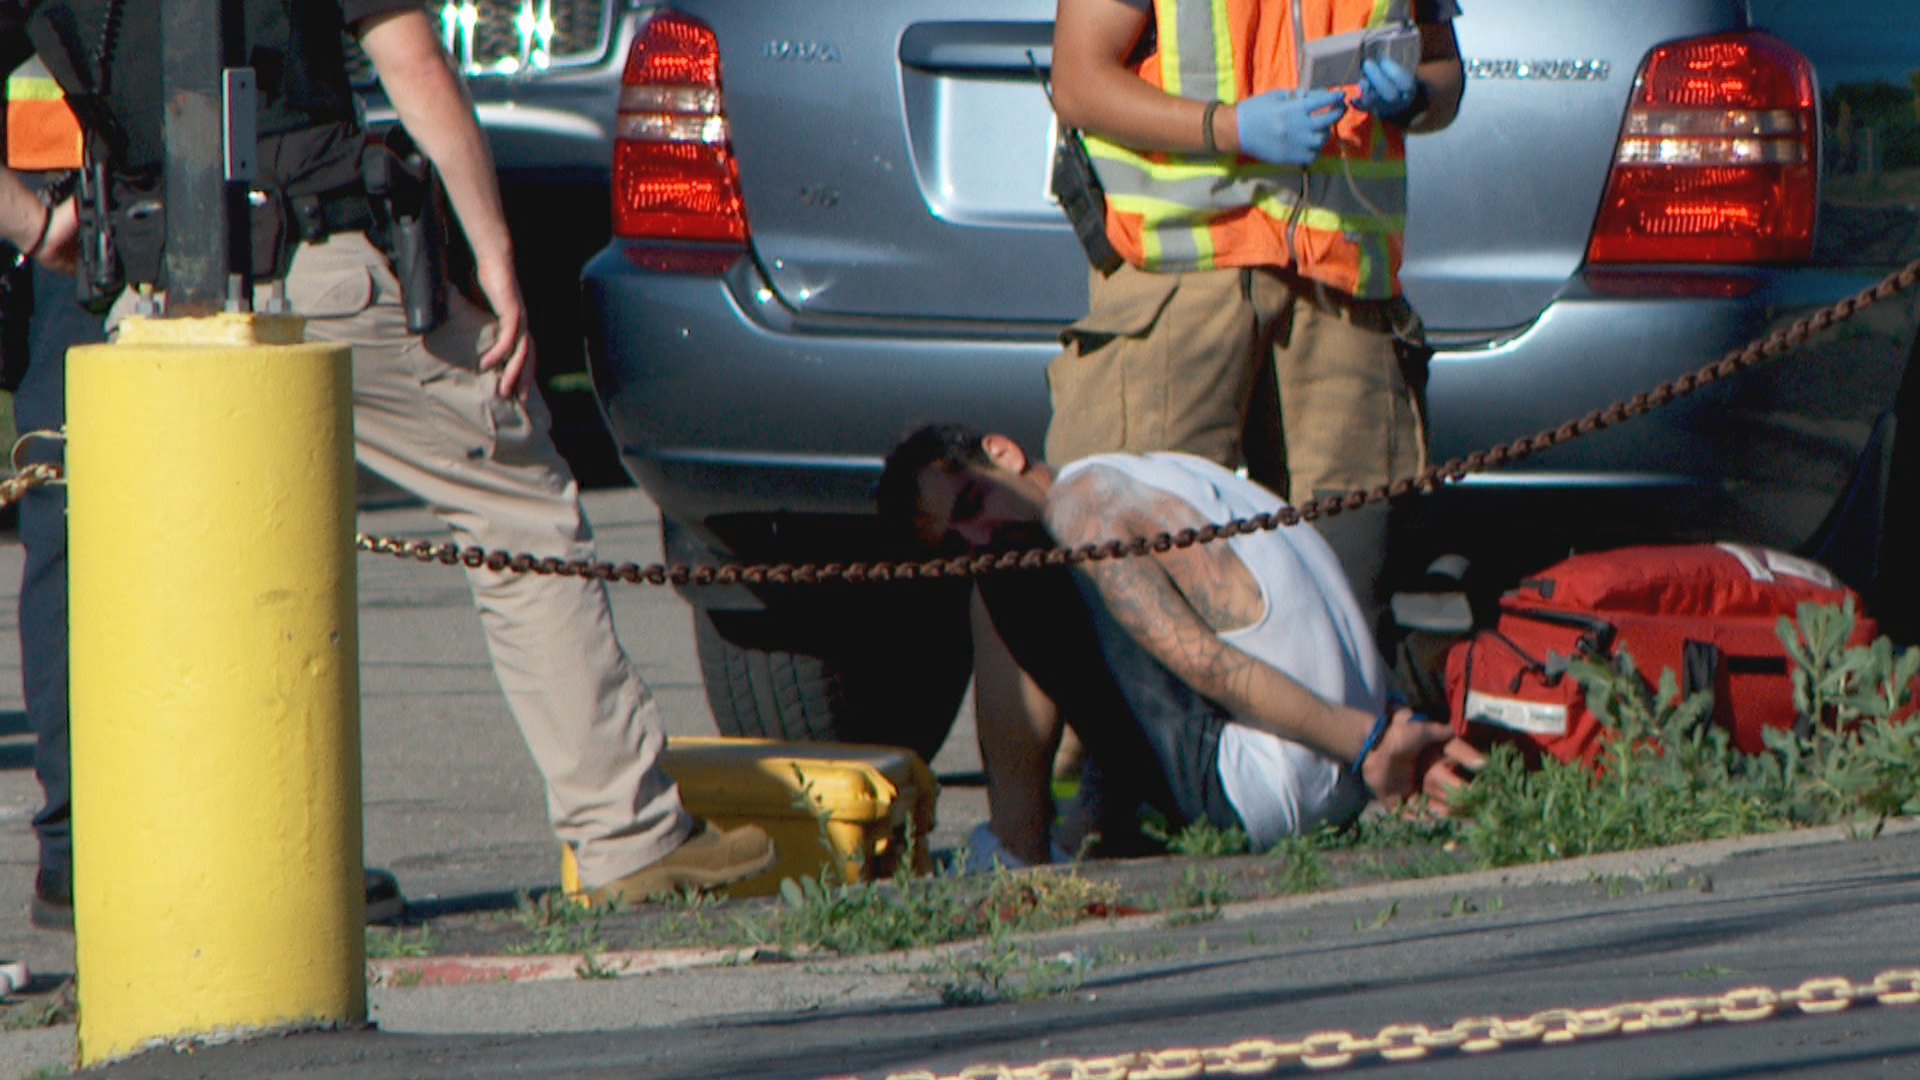 Police arrest man after car chase in South Salt Lake (Photo: Jeremy Harris)